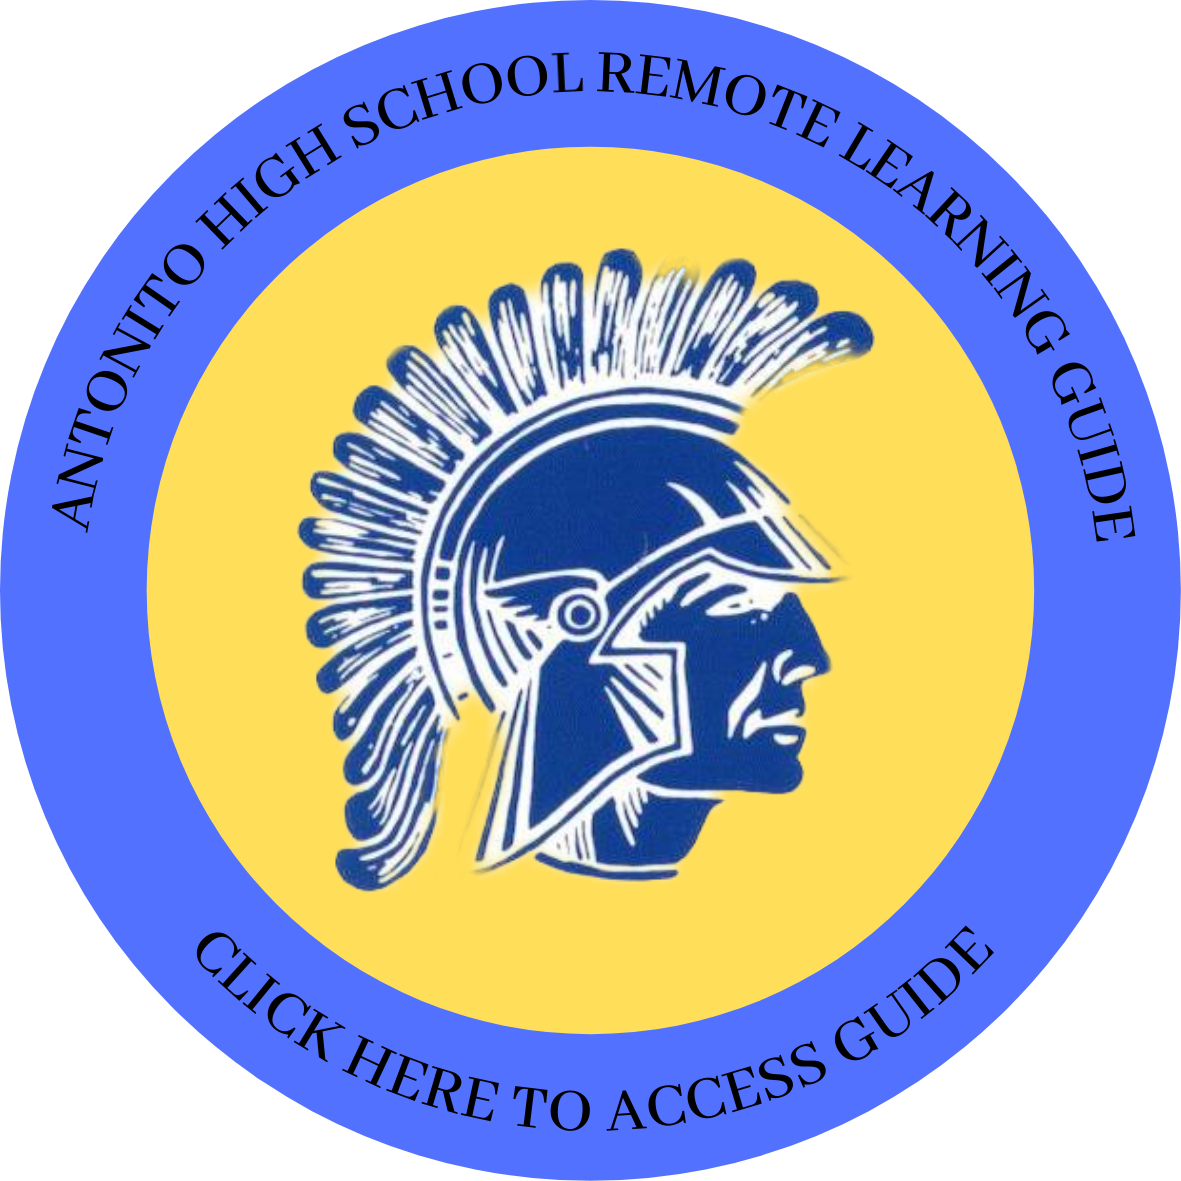 High School Remote Learning Guide